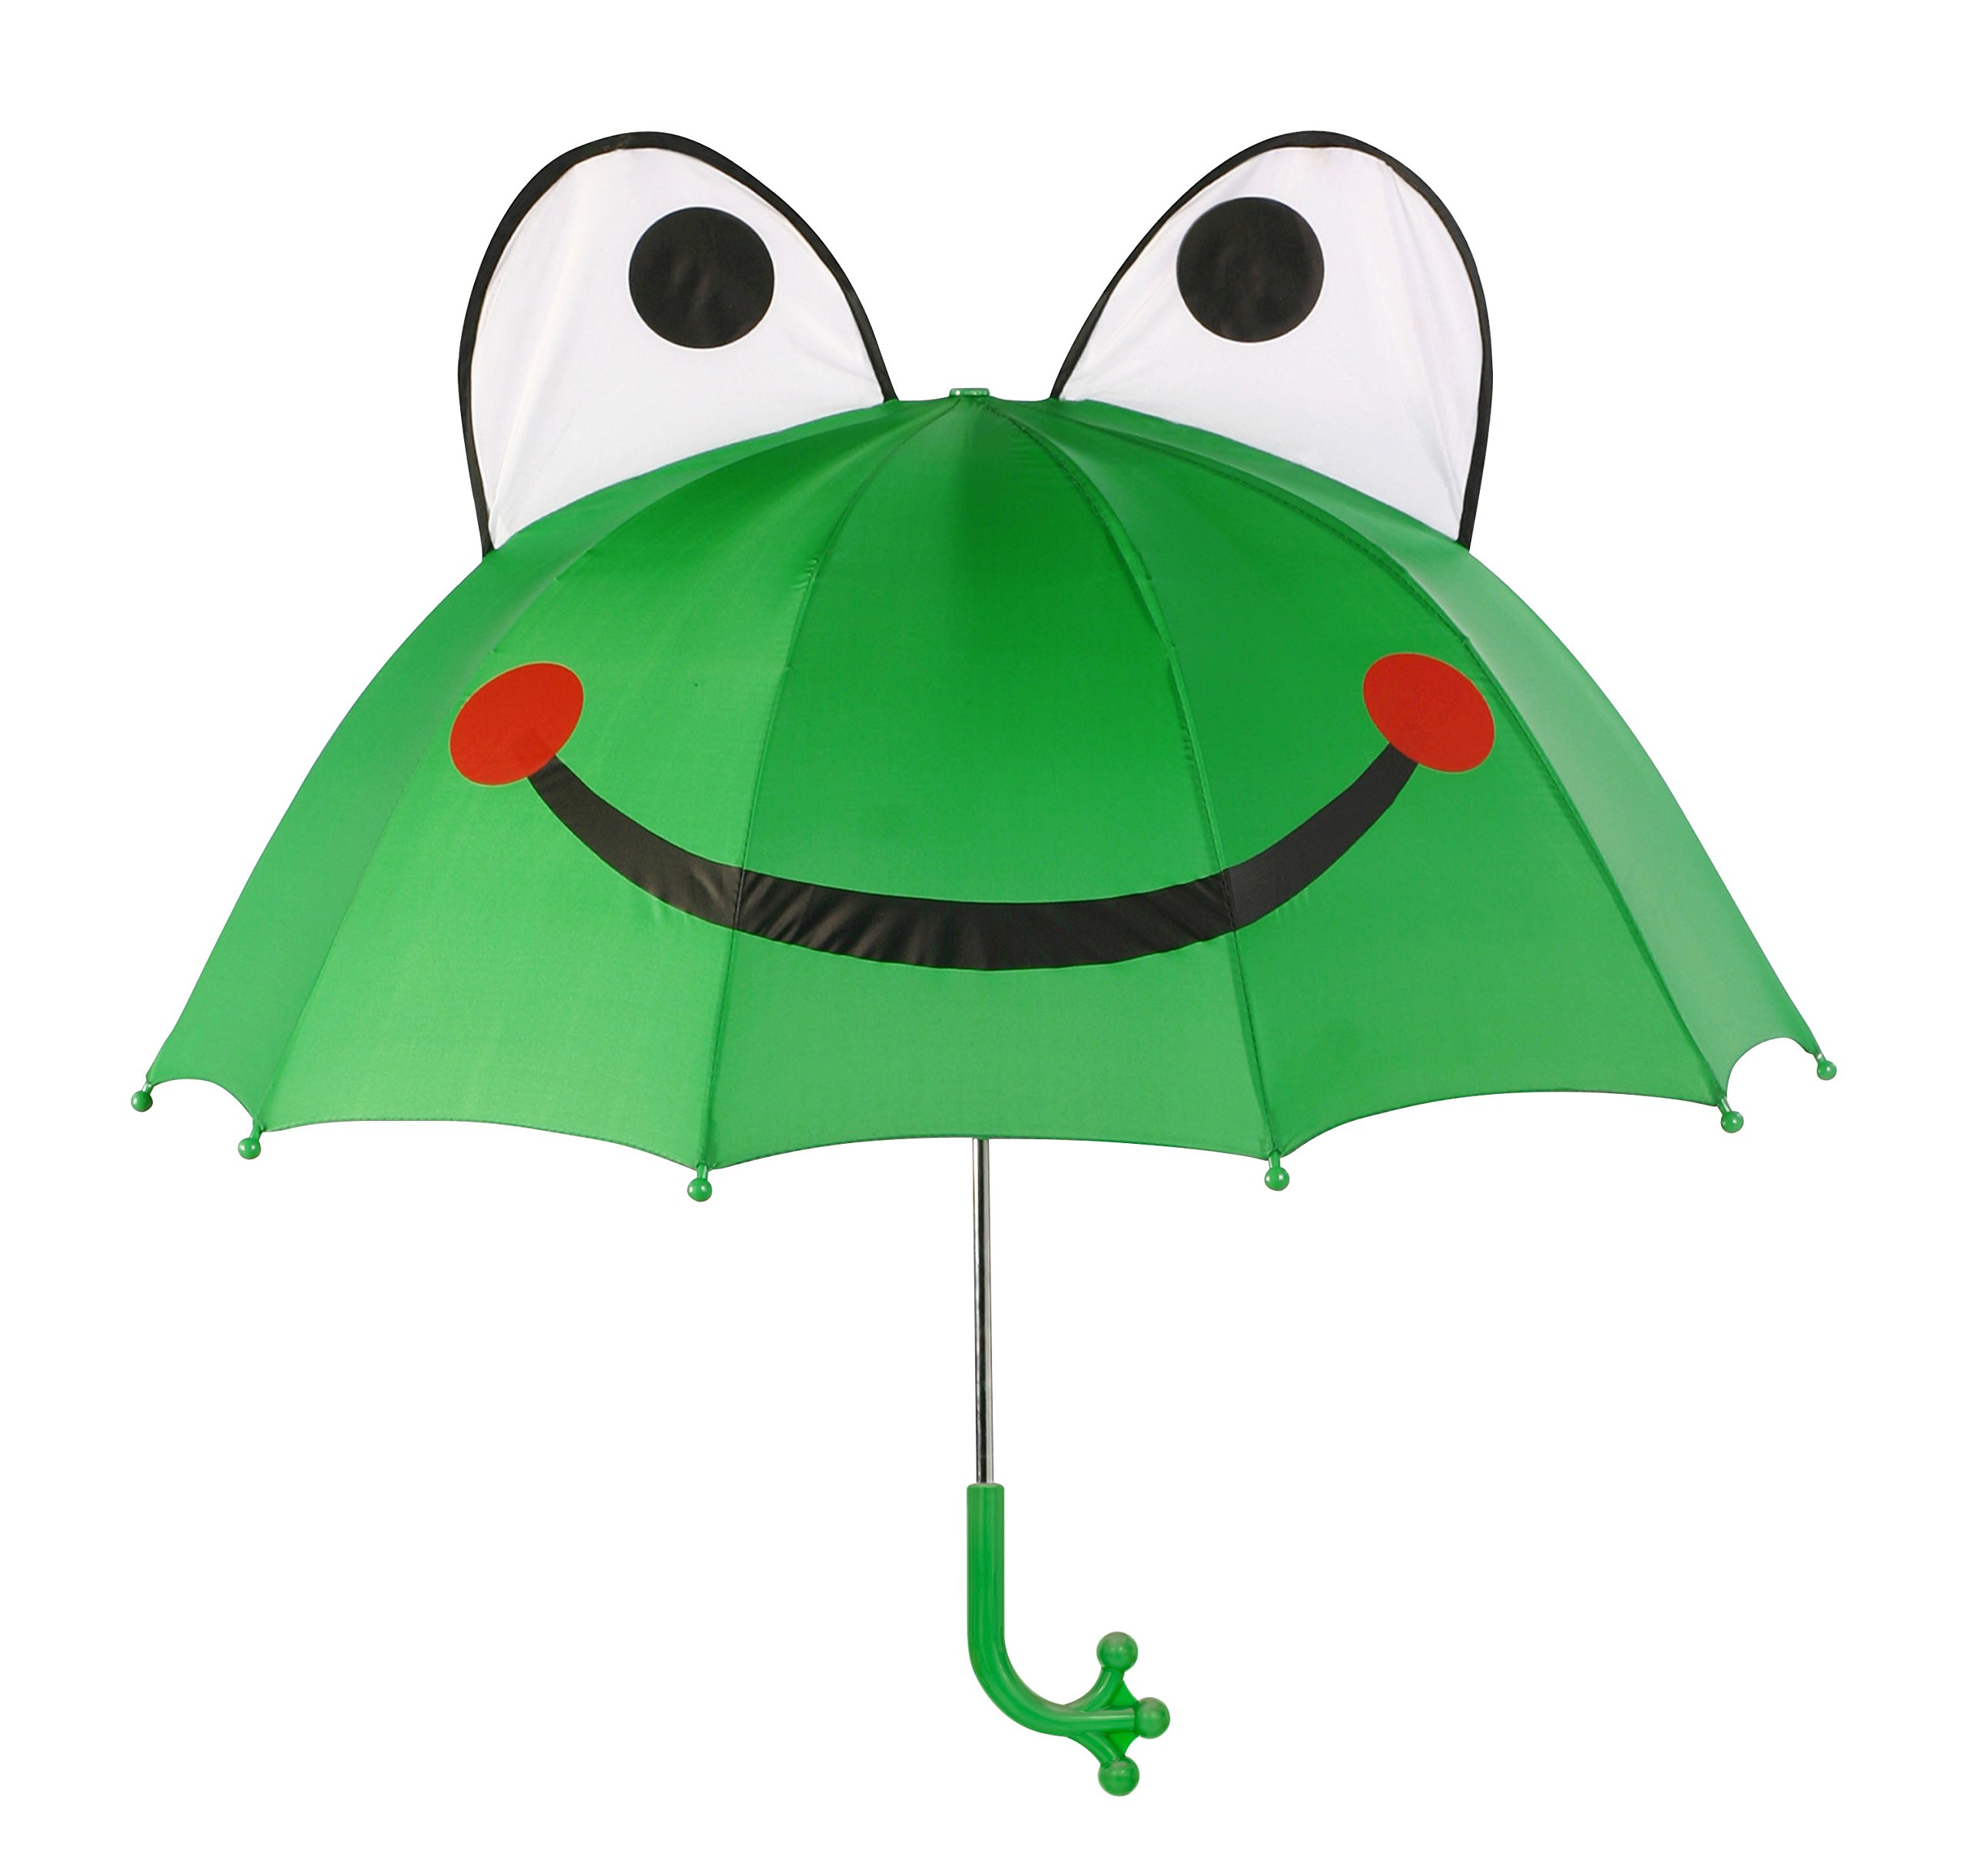 Kidorable Kids Frog Umbrella, Green, One Size for Toddlers and Big Kids, Lightweight Child-Sized Nylon Rain Proof Umbrella